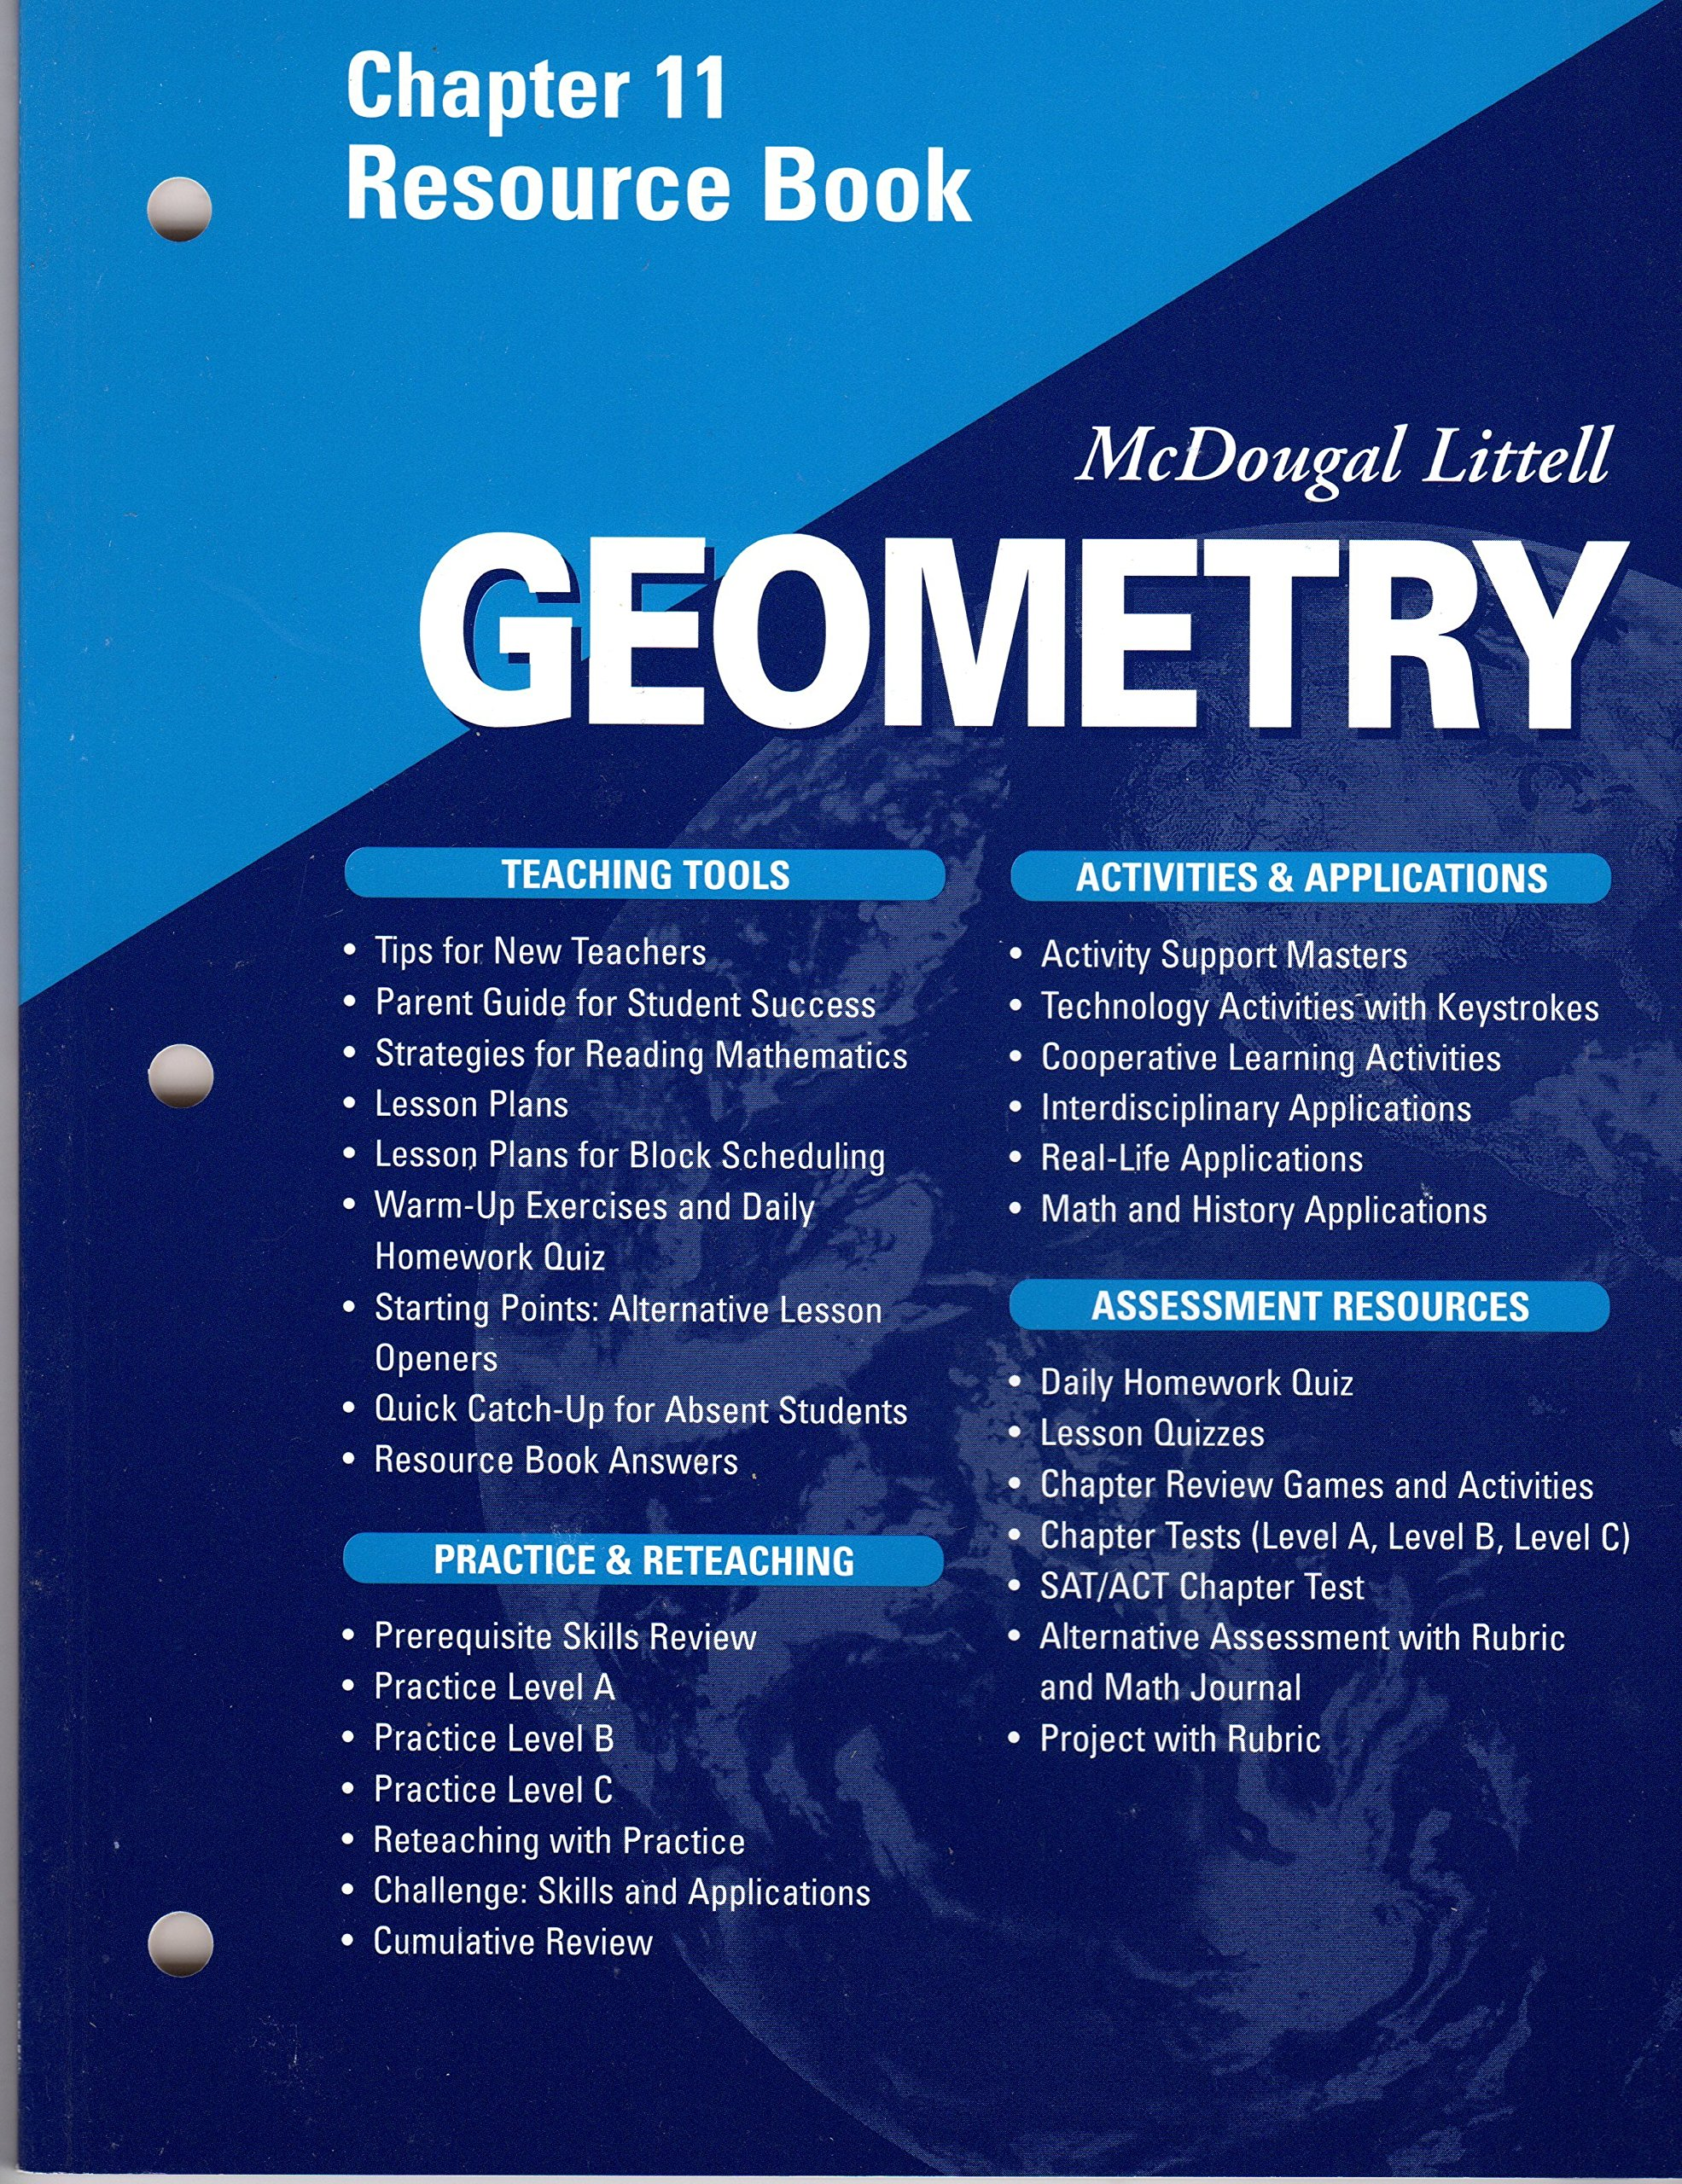 worksheet Geometry Worksheet Answers Mcdougal Littell mcdougal littell geometry chapter 11 resource book littel 9780618020744 amazon com books